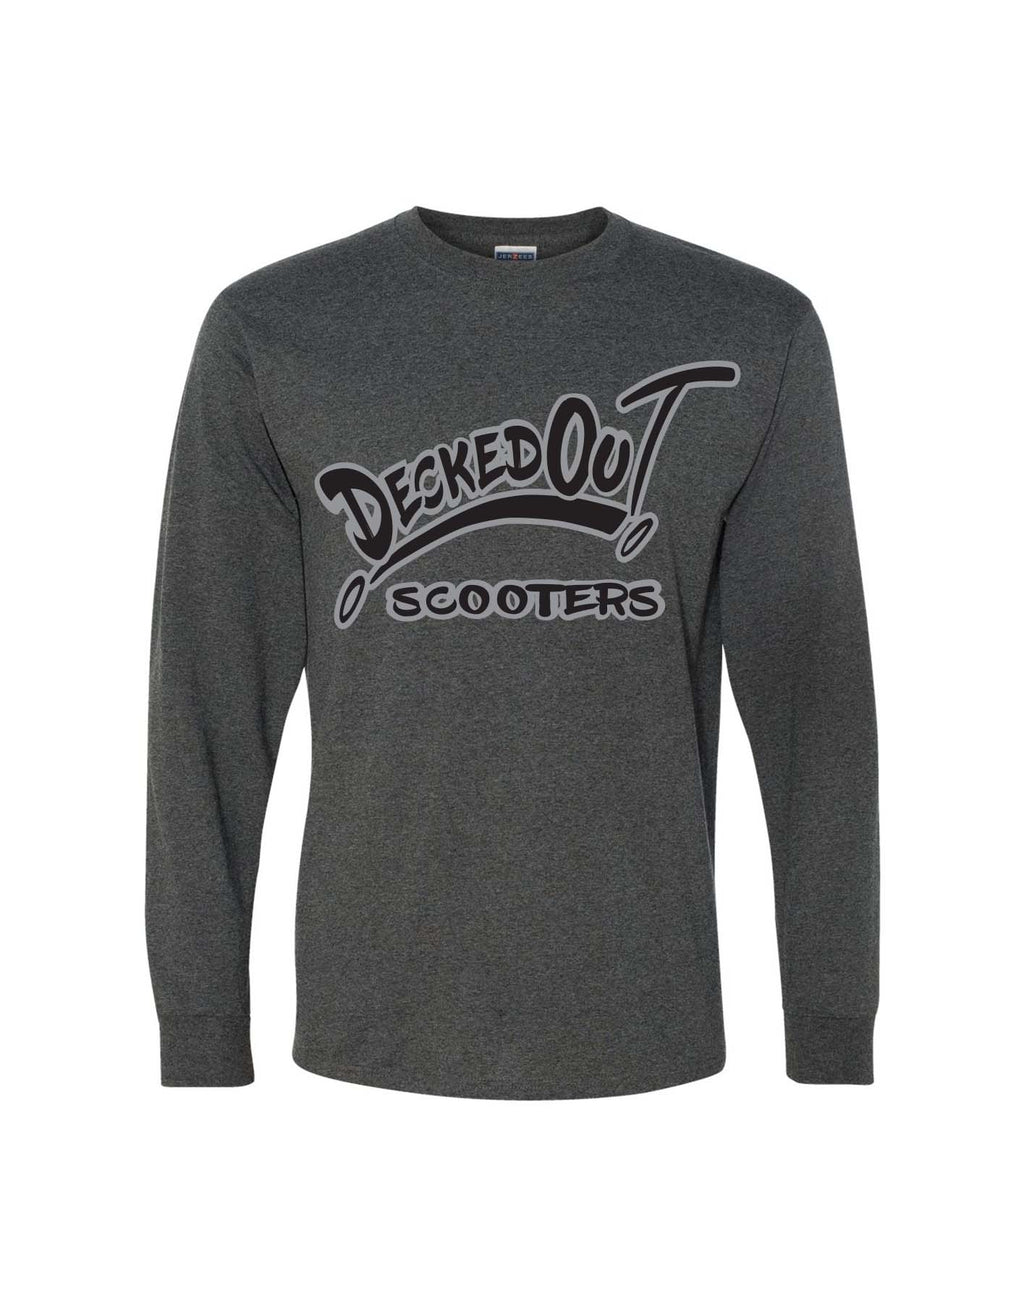 DeckedOut Long-sleeve 50/50 T-Shirt - DeckedOut Scooters